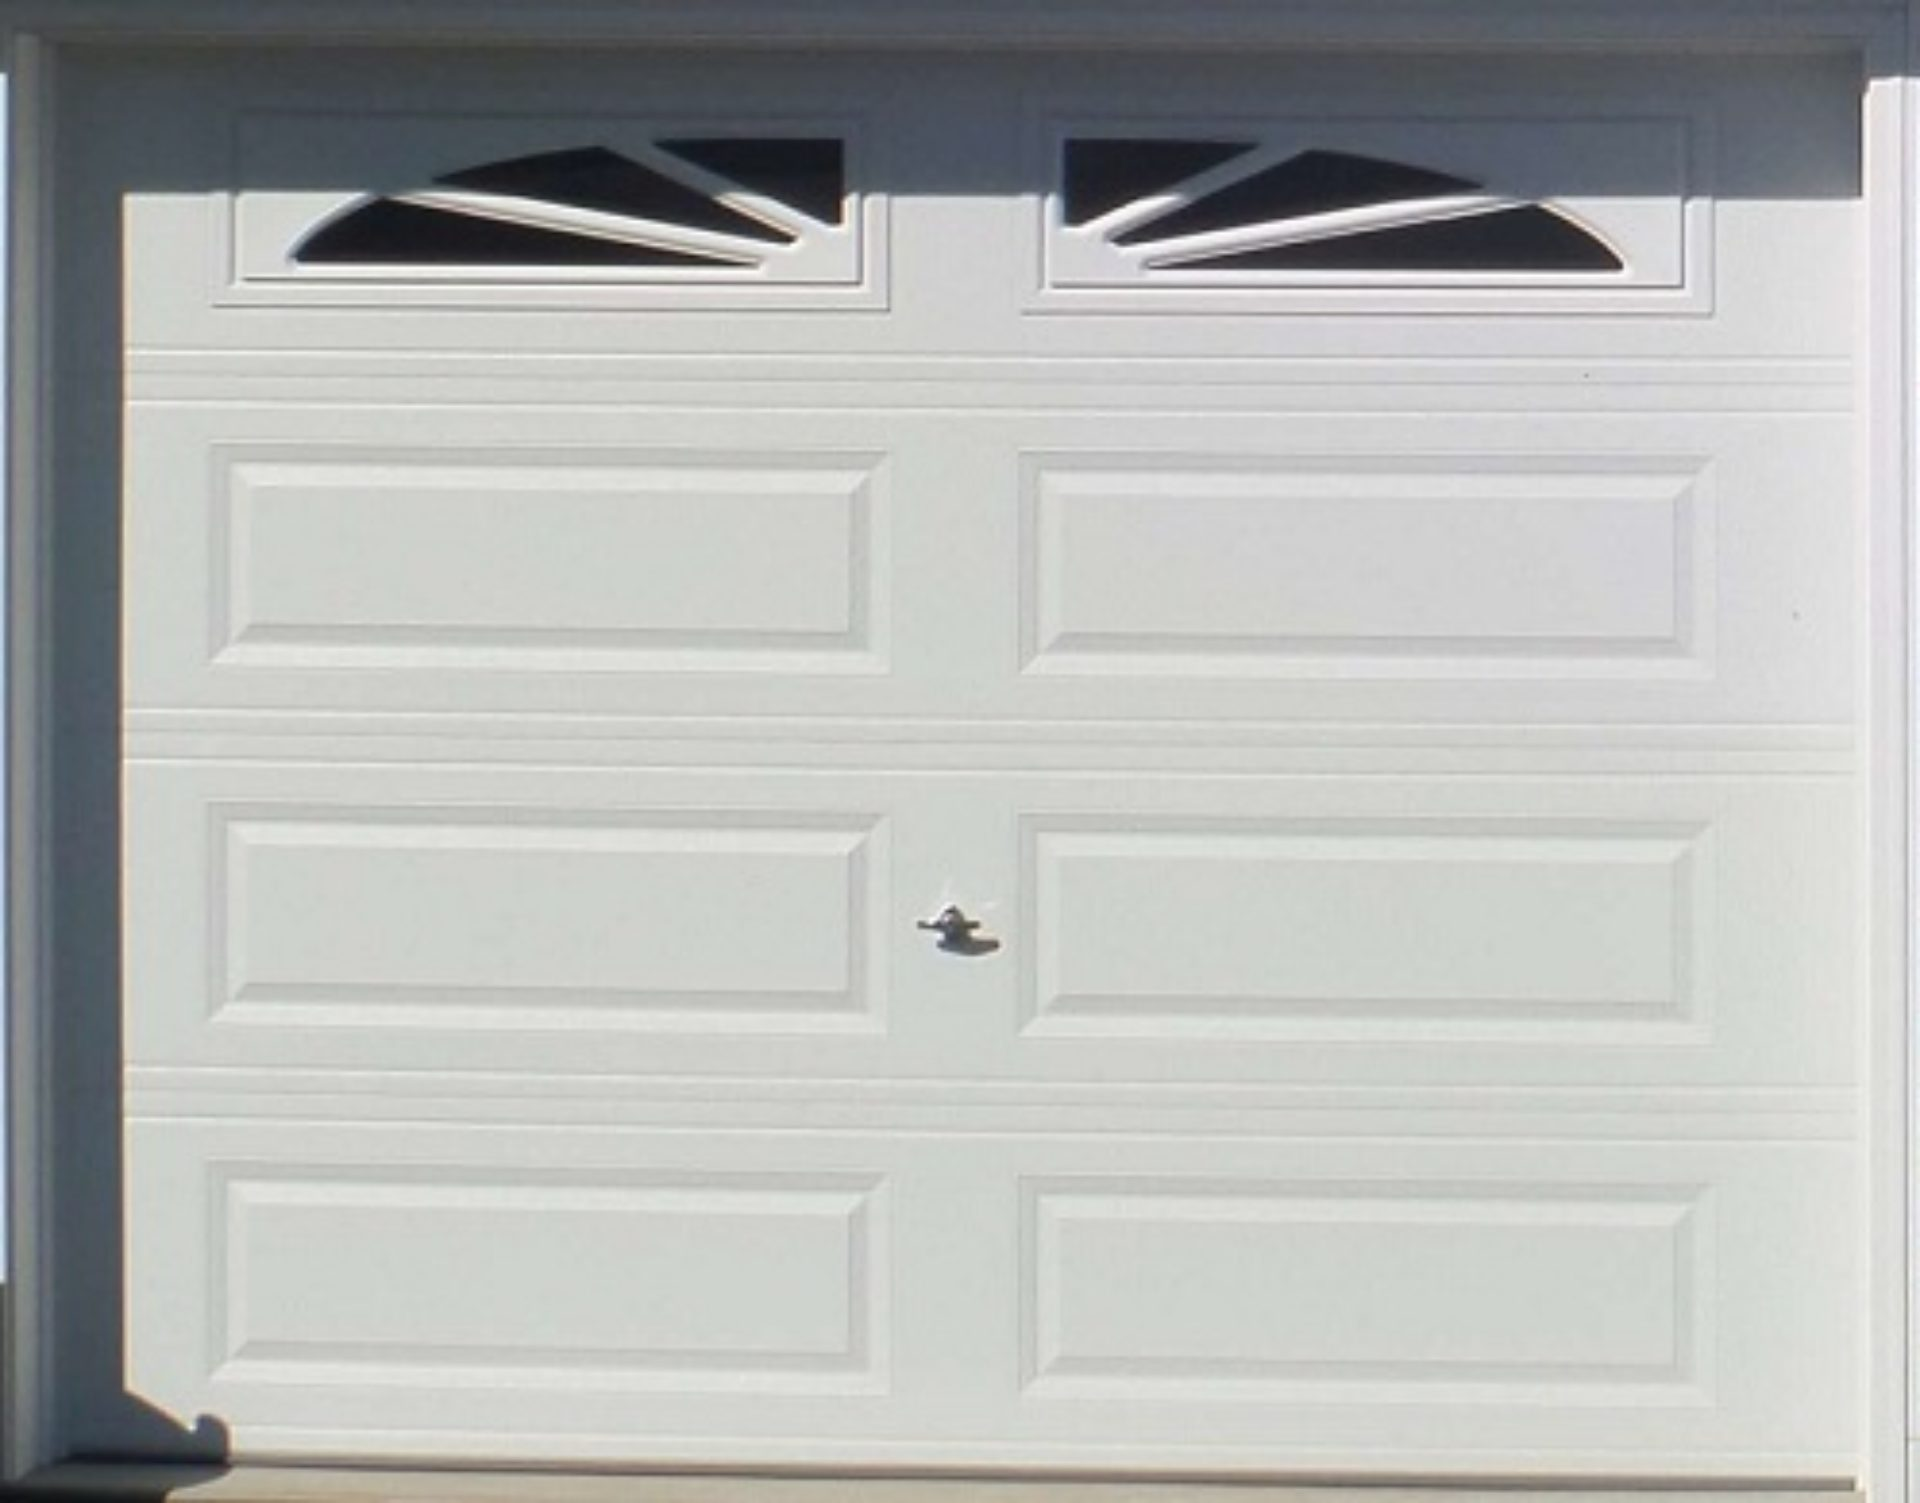 phoenix repair image the service door larger overhead superior and batters options cost view doors joe a garage replace arizona